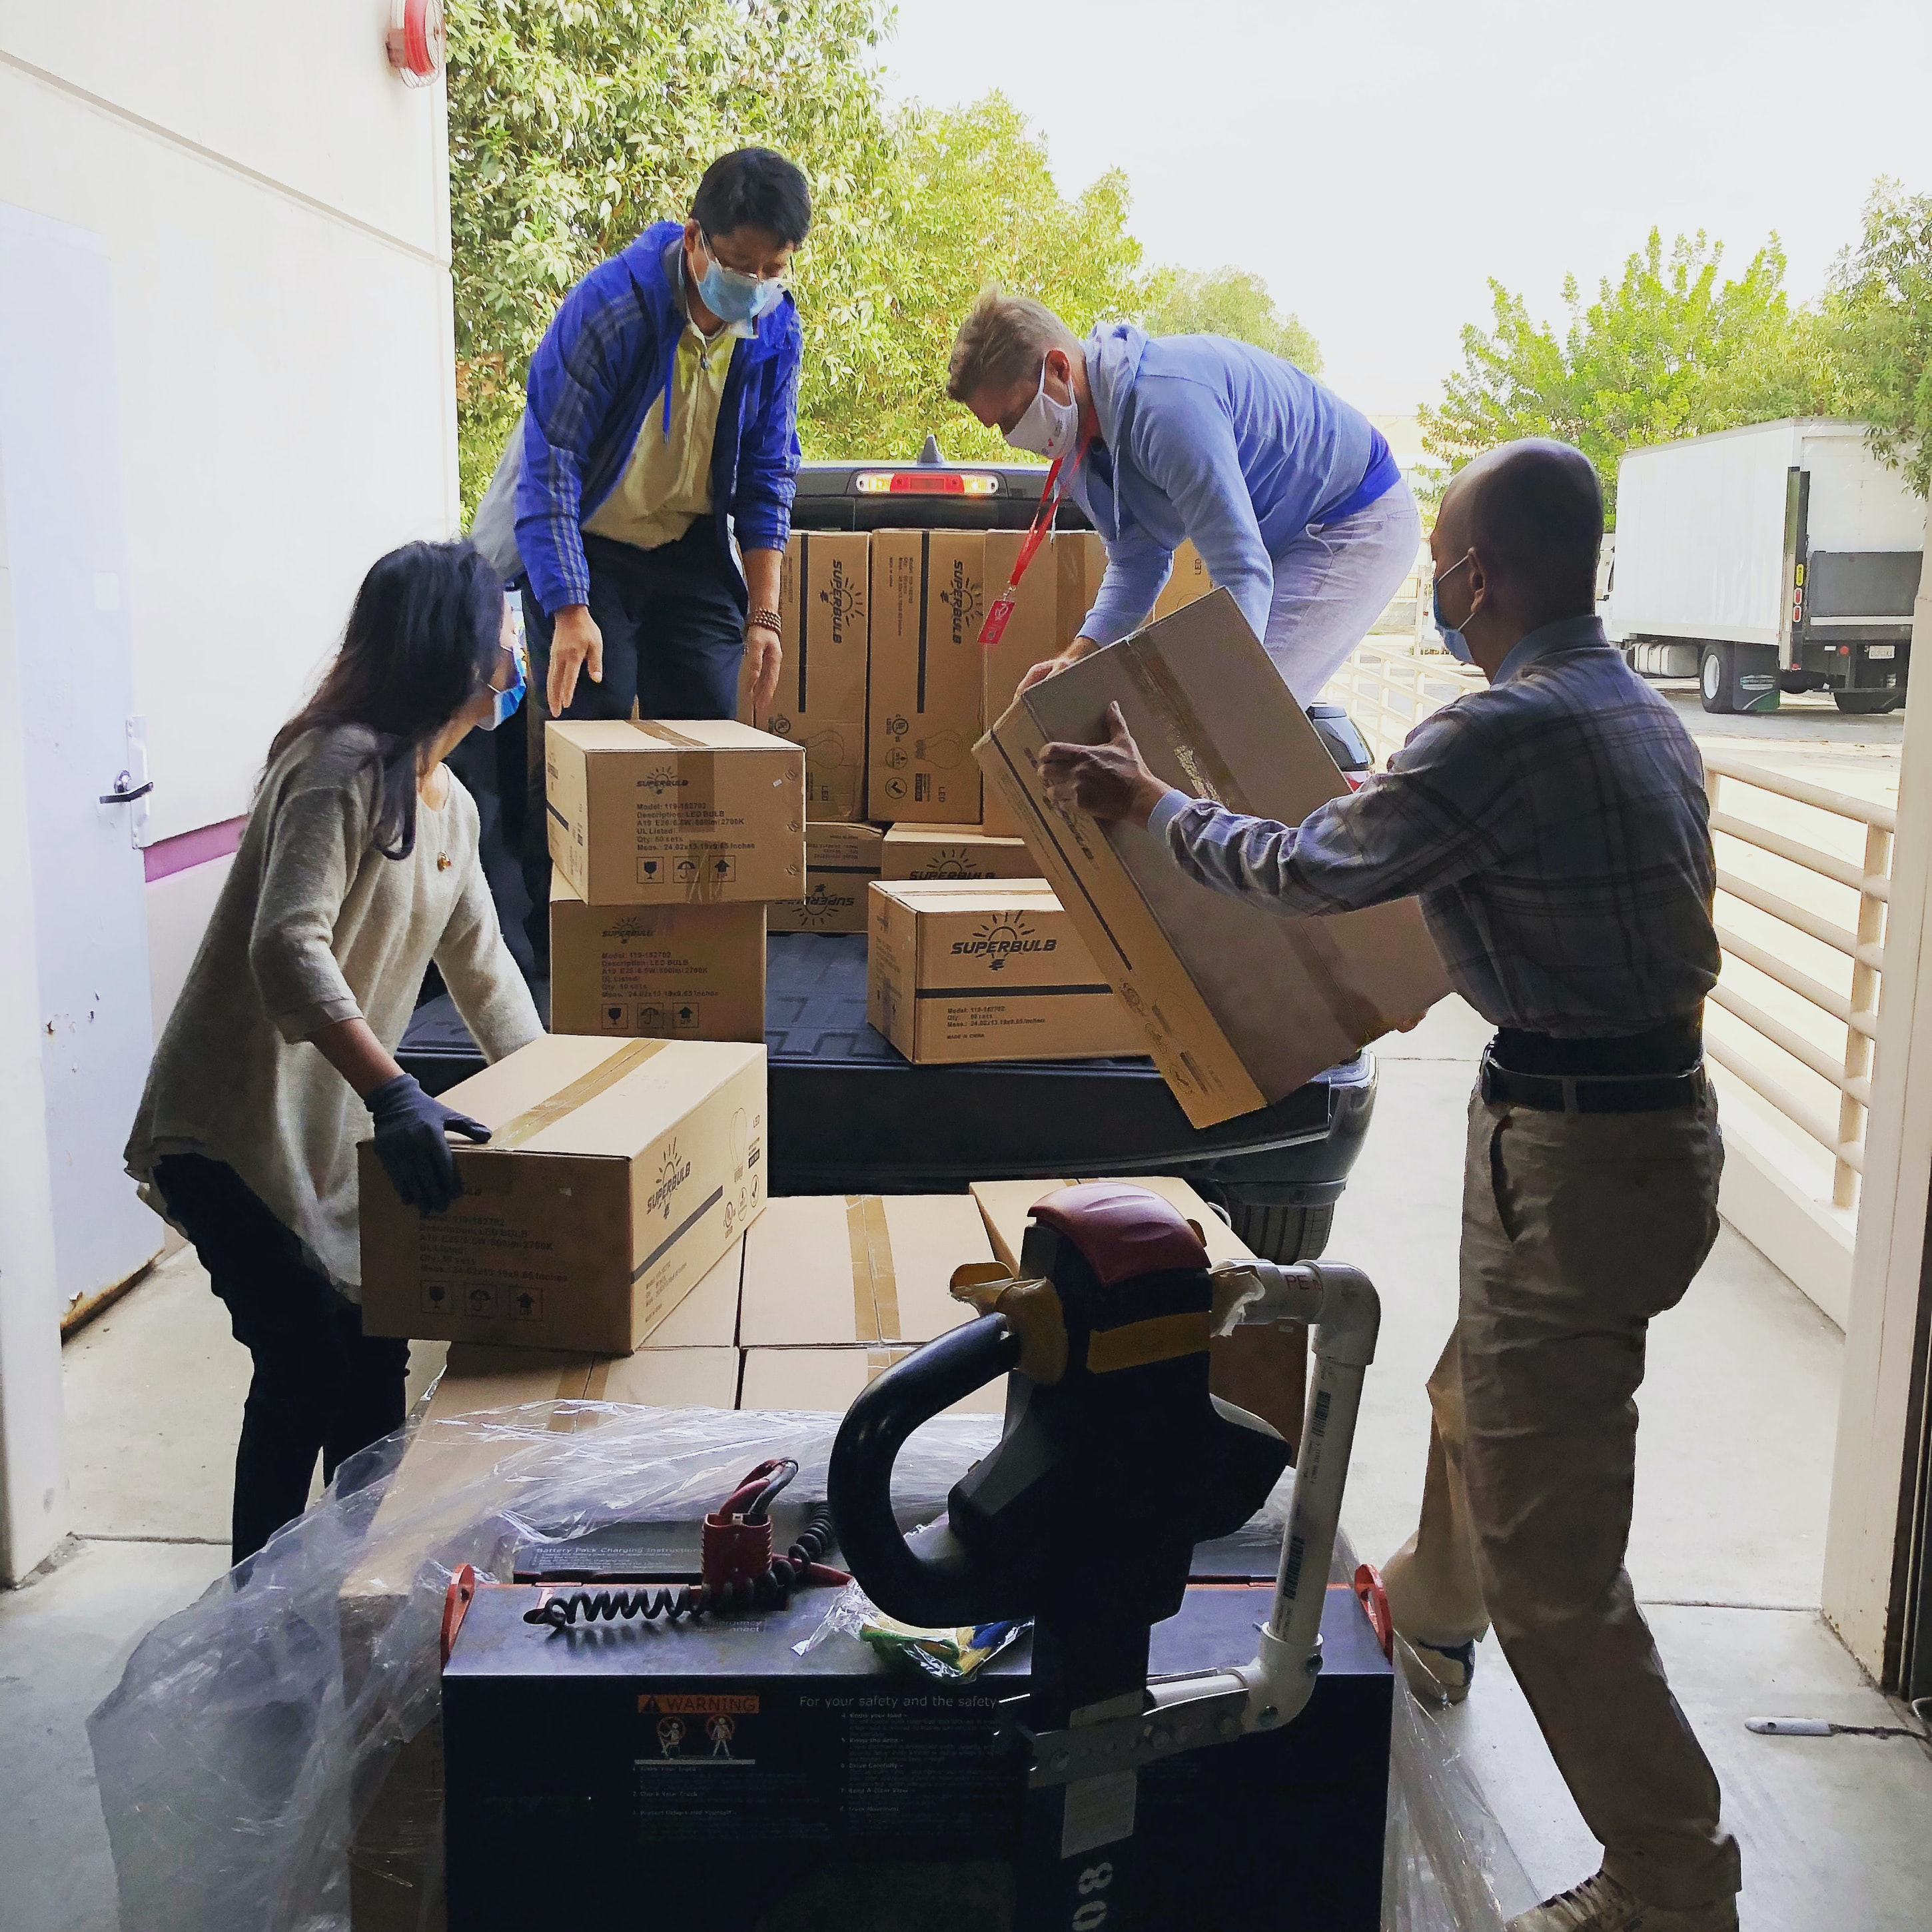 Nonprofit workers loading up a truck